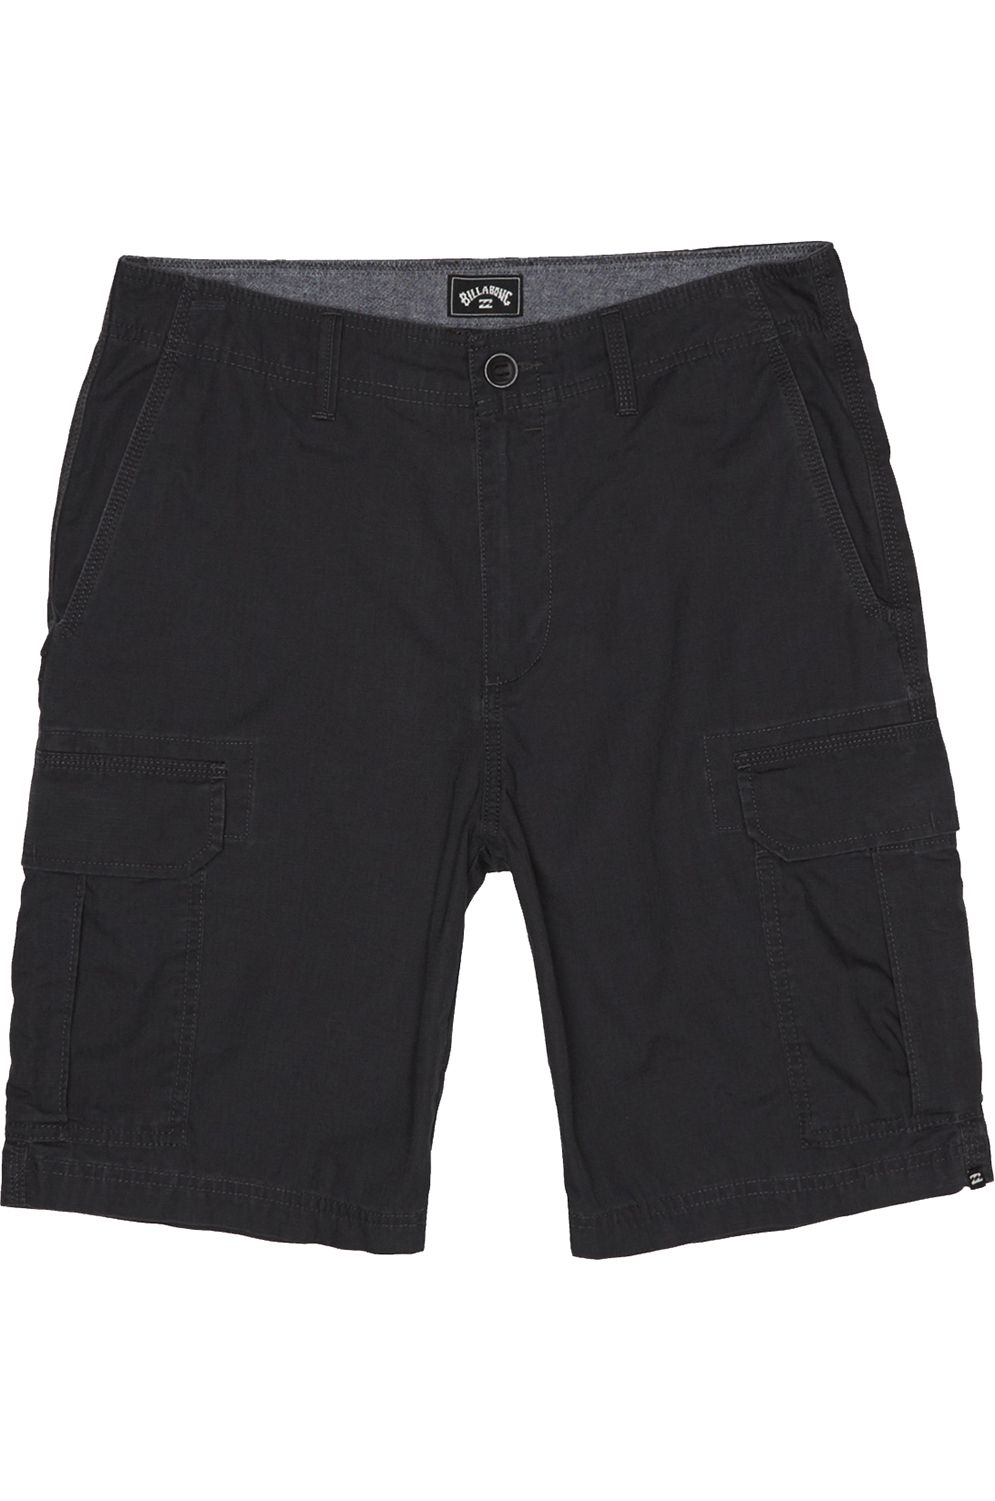 Walkshorts Billabong SCHEME CARGO Char